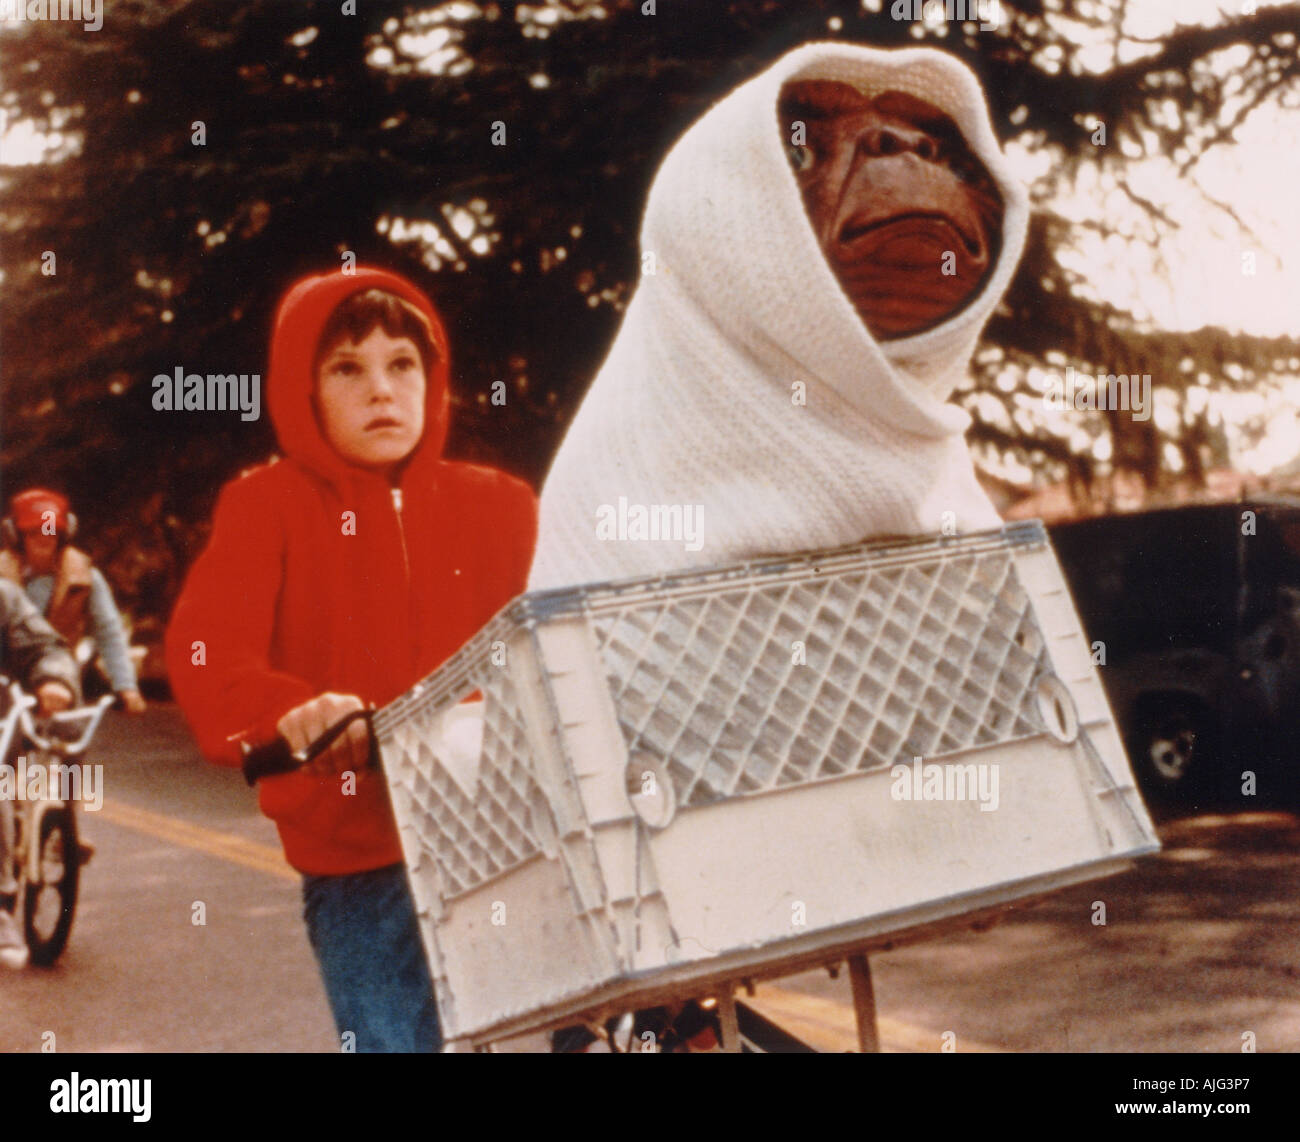 E T 1982 Universal film directed by Stephen Spielberg with Henry Thomas riding the bike - Stock Image